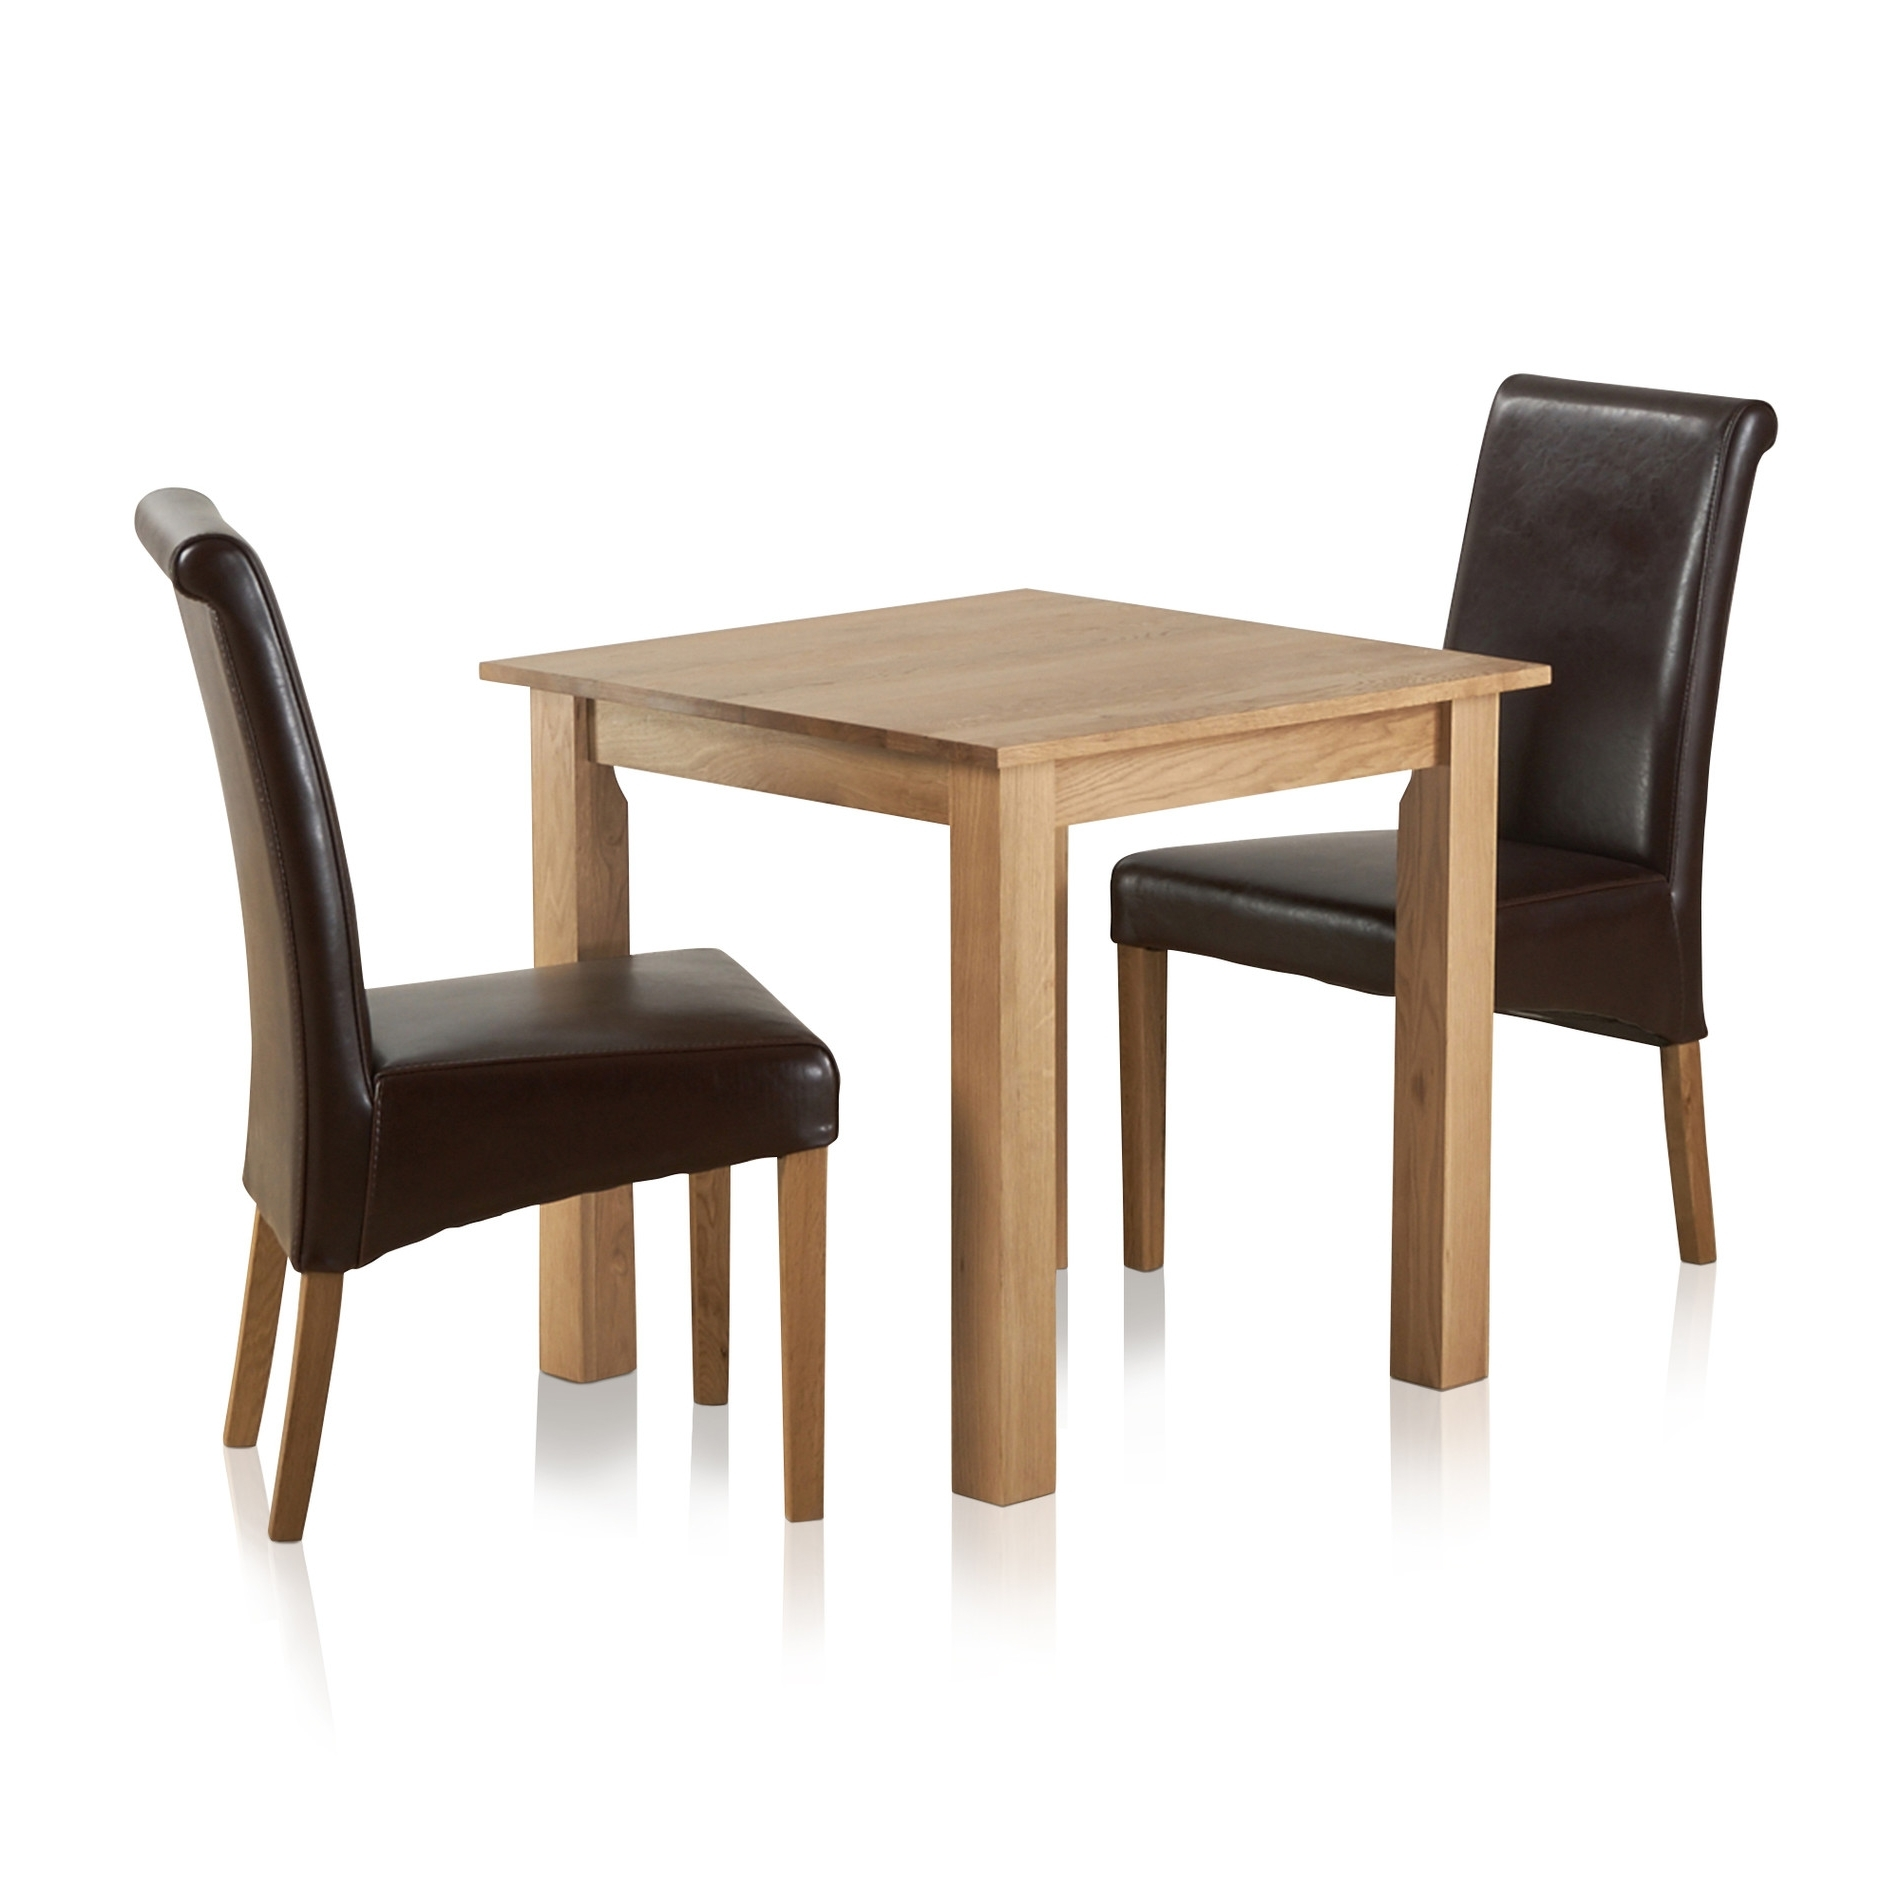 Next Hudson Dining Tables Regarding Newest Hudson Dining Set In Natural Oak – Table + 2 Leather Chairs (View 16 of 25)